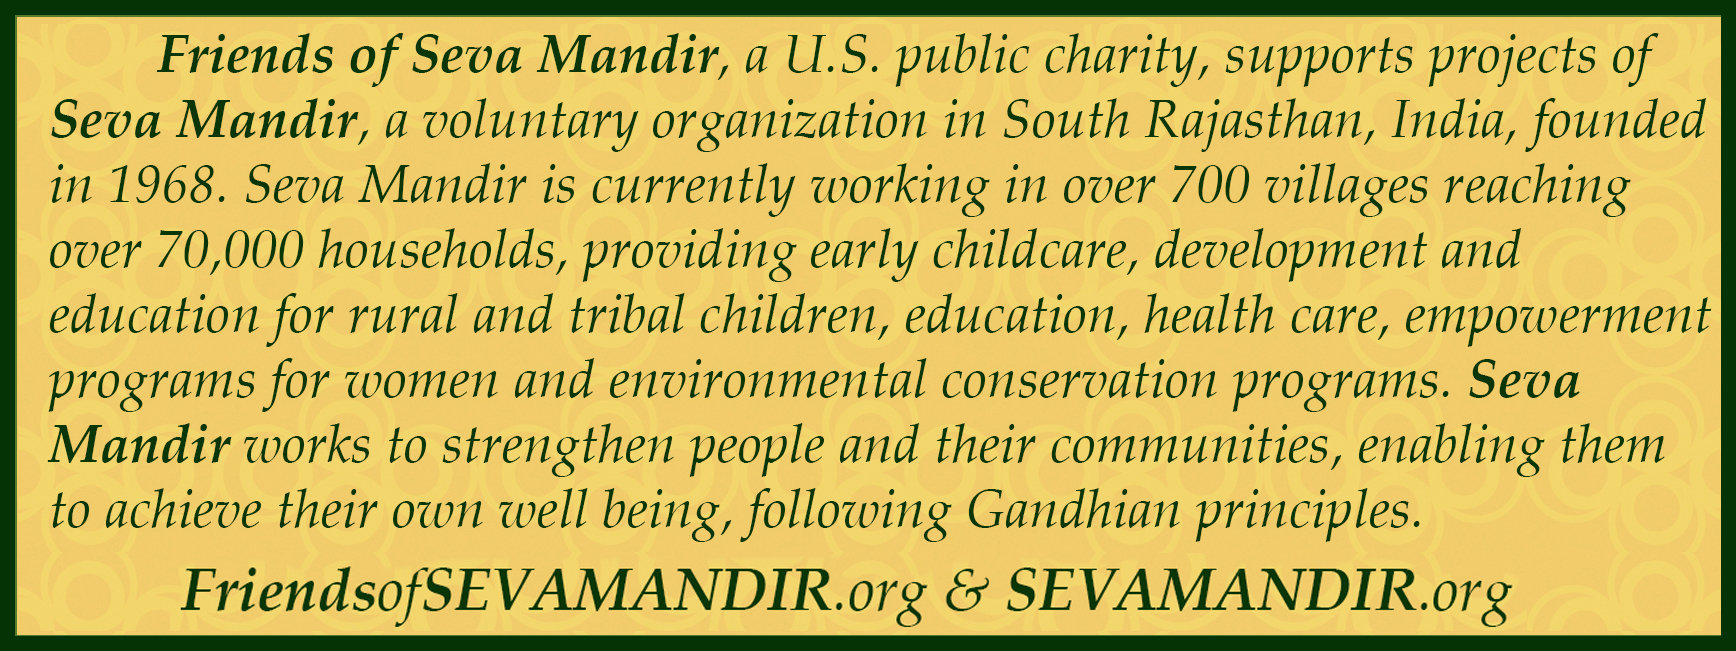 Friends of Seva Mandir